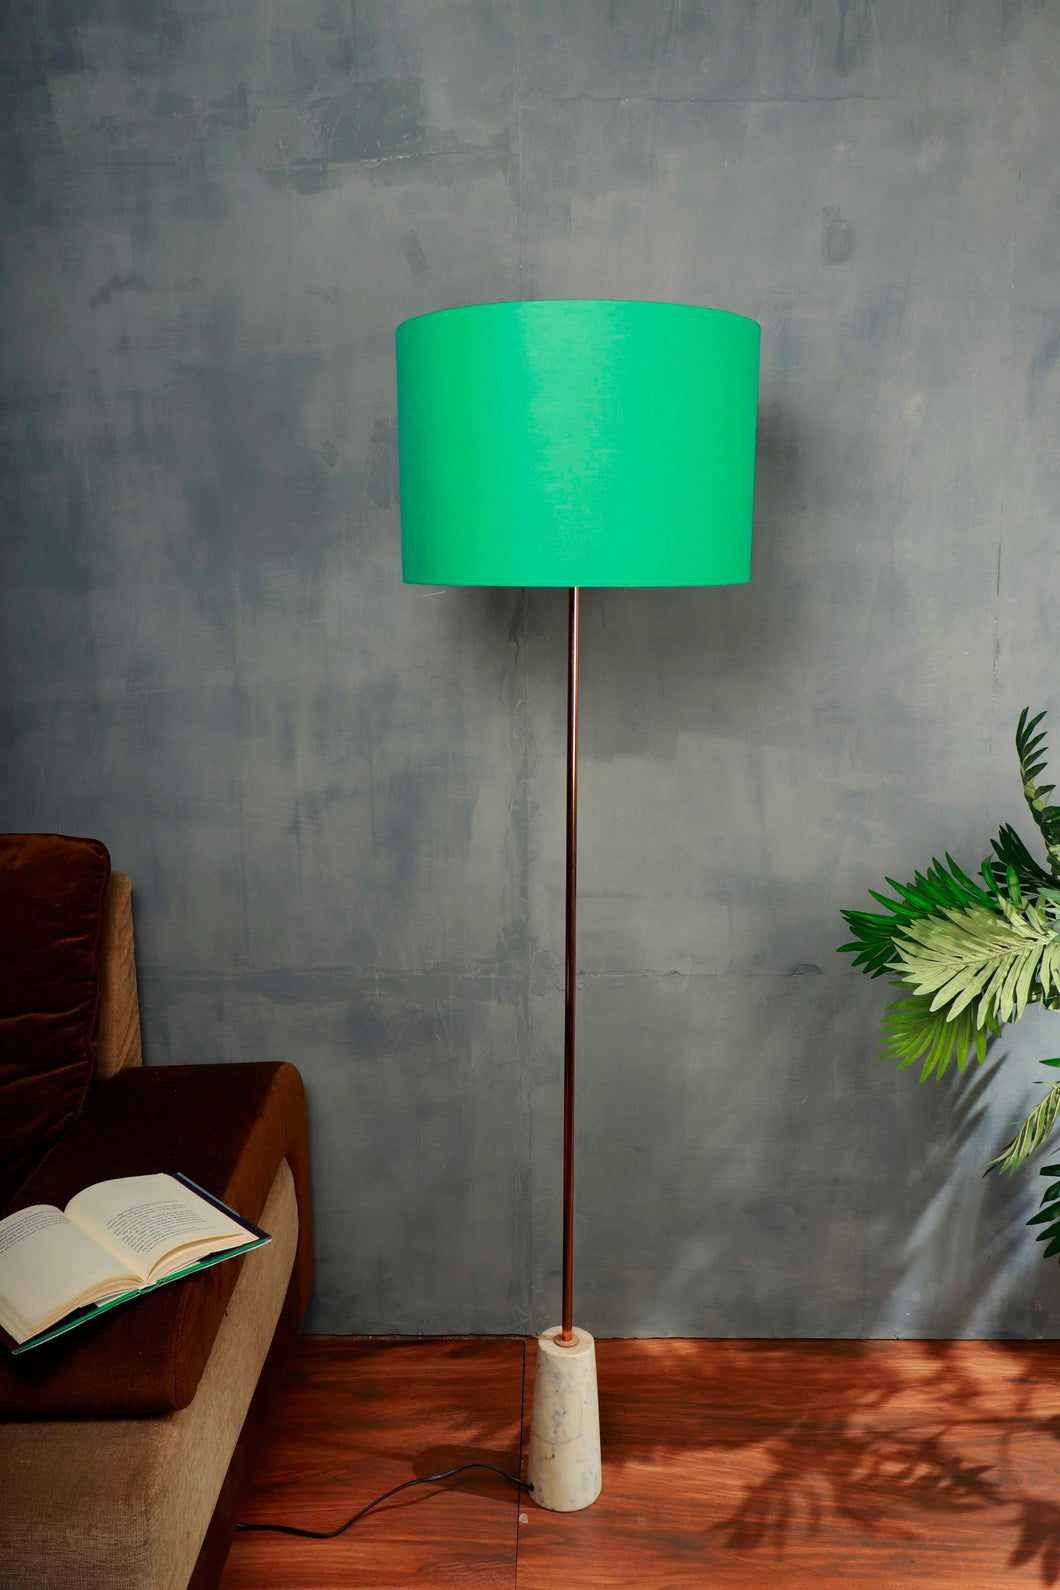 Marble Arrow Lamp Stand with Mint Green Lampshade